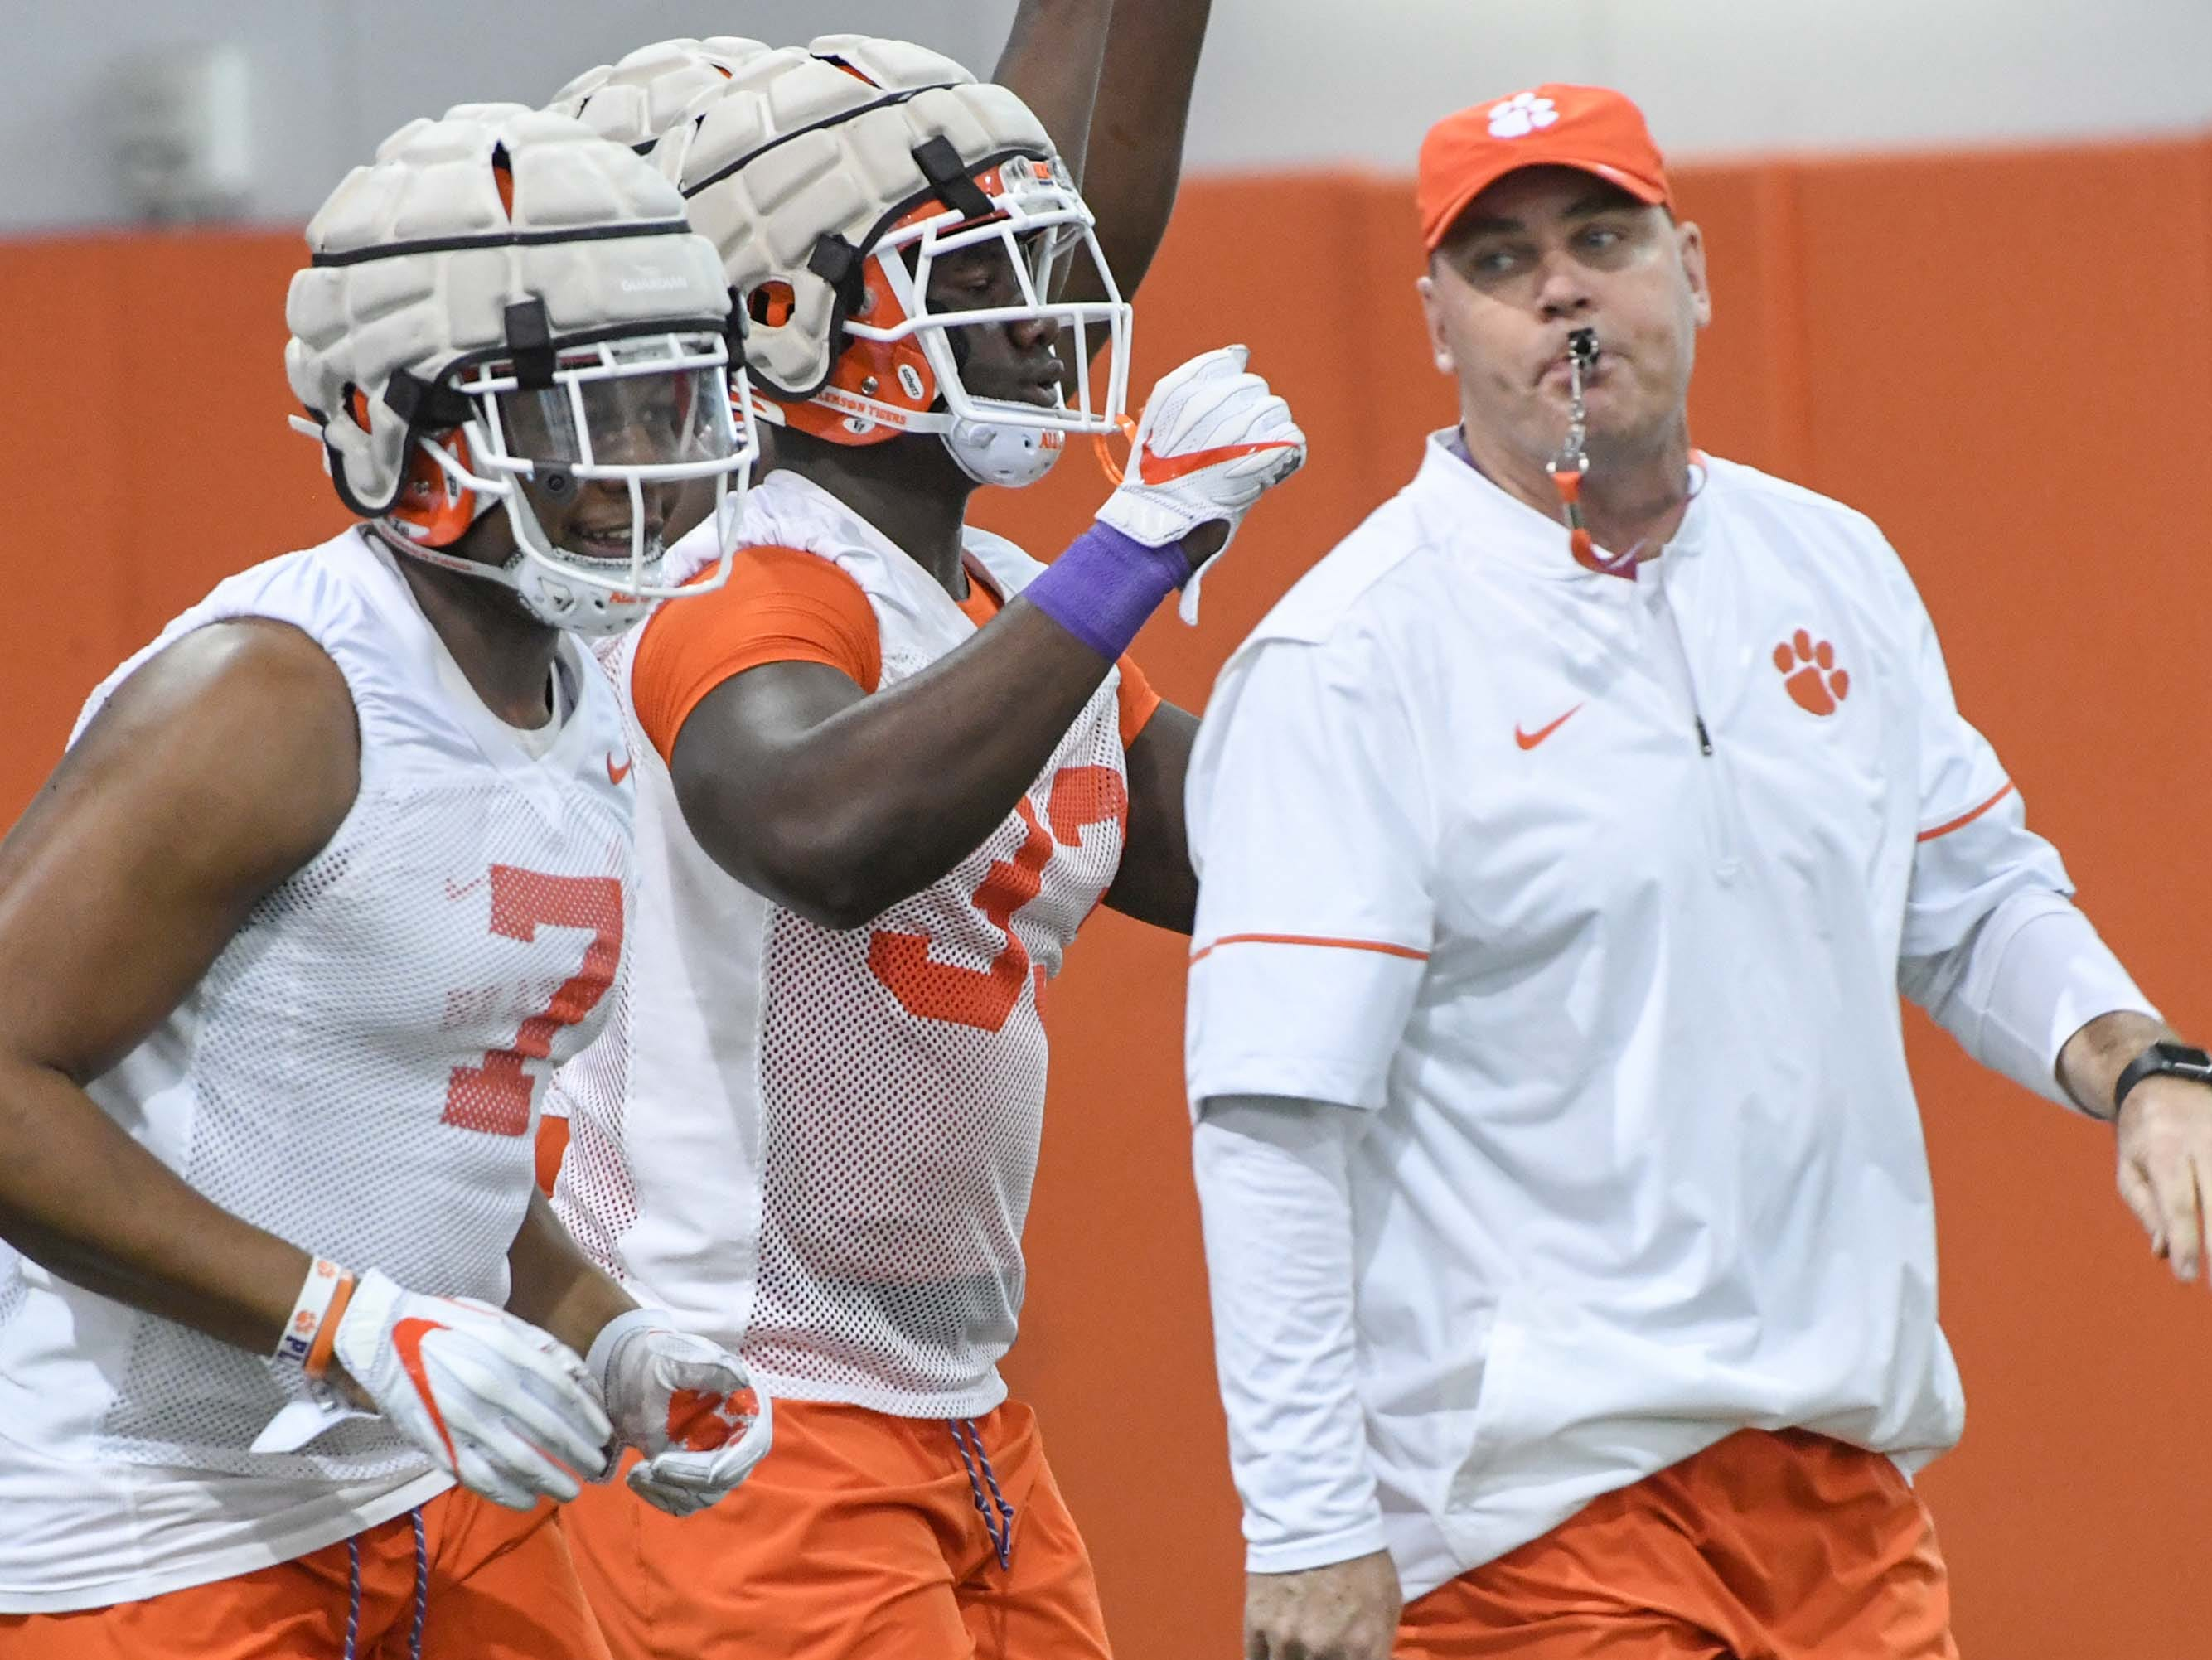 Clemson defensive end Justin Mascoll(7), left, returns with the number 7 jersey Austin Bryant wore on defense the year before, with newcomer defensive lineman Ruke Orhorhoro(33), near assistant head coach Danny Pearman during the first practice at the Clemson Indoor Practice Facility in Clemson Wednesday, February 27, 2019.